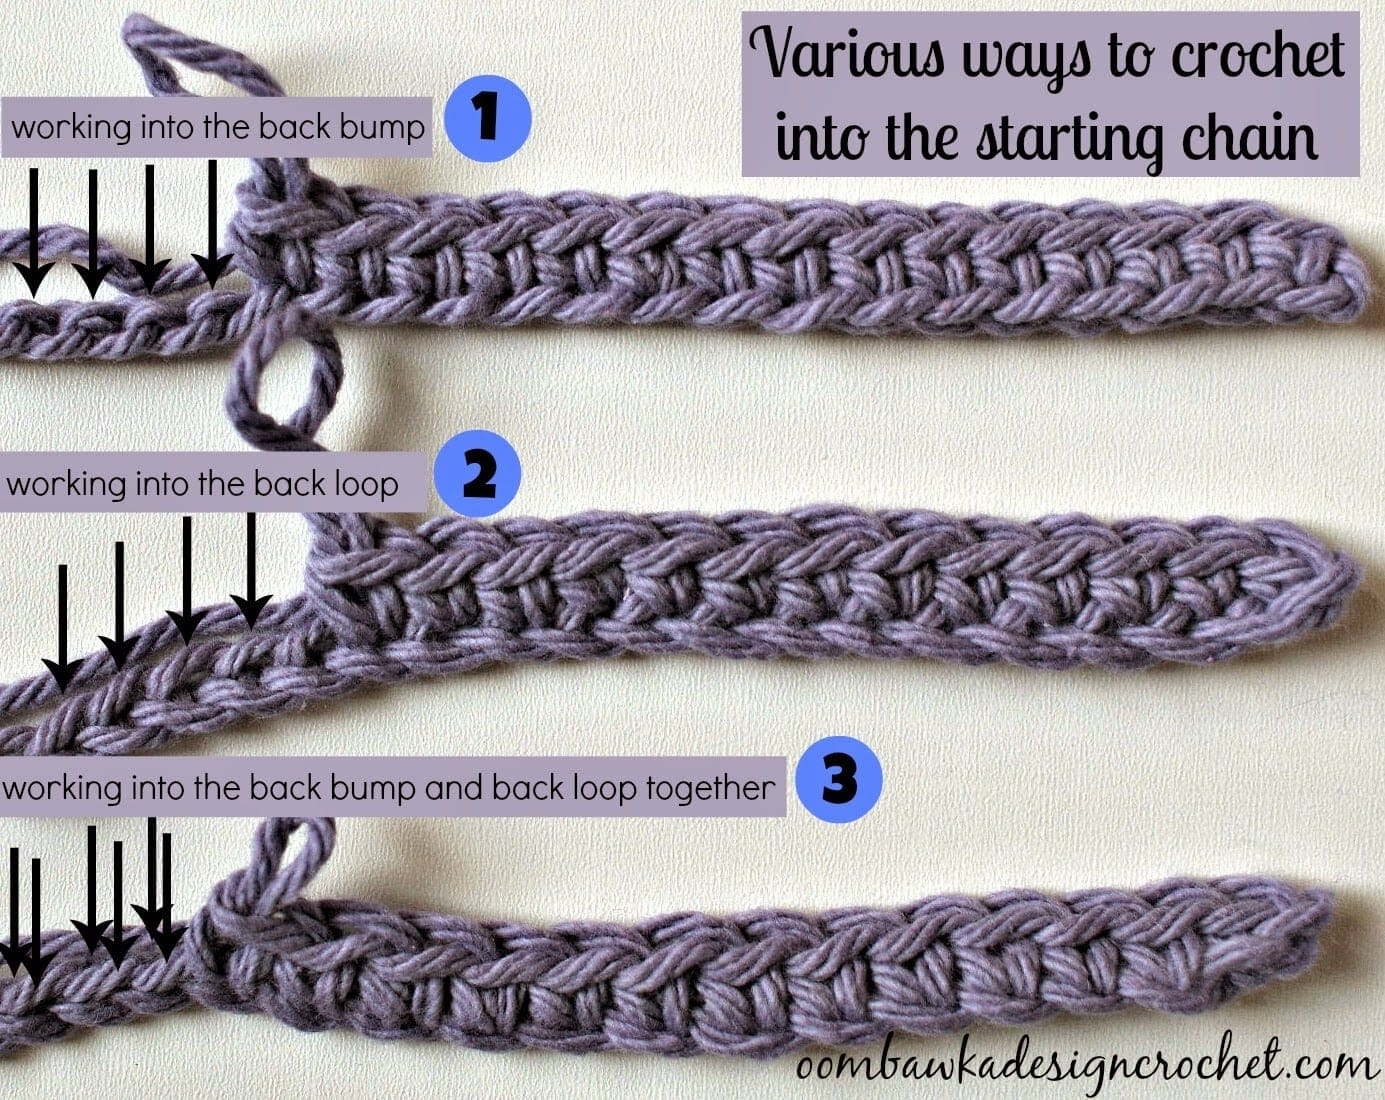 Crocheting Into Chain : ... of a starting chain that mirrors the look of the final row of crochet